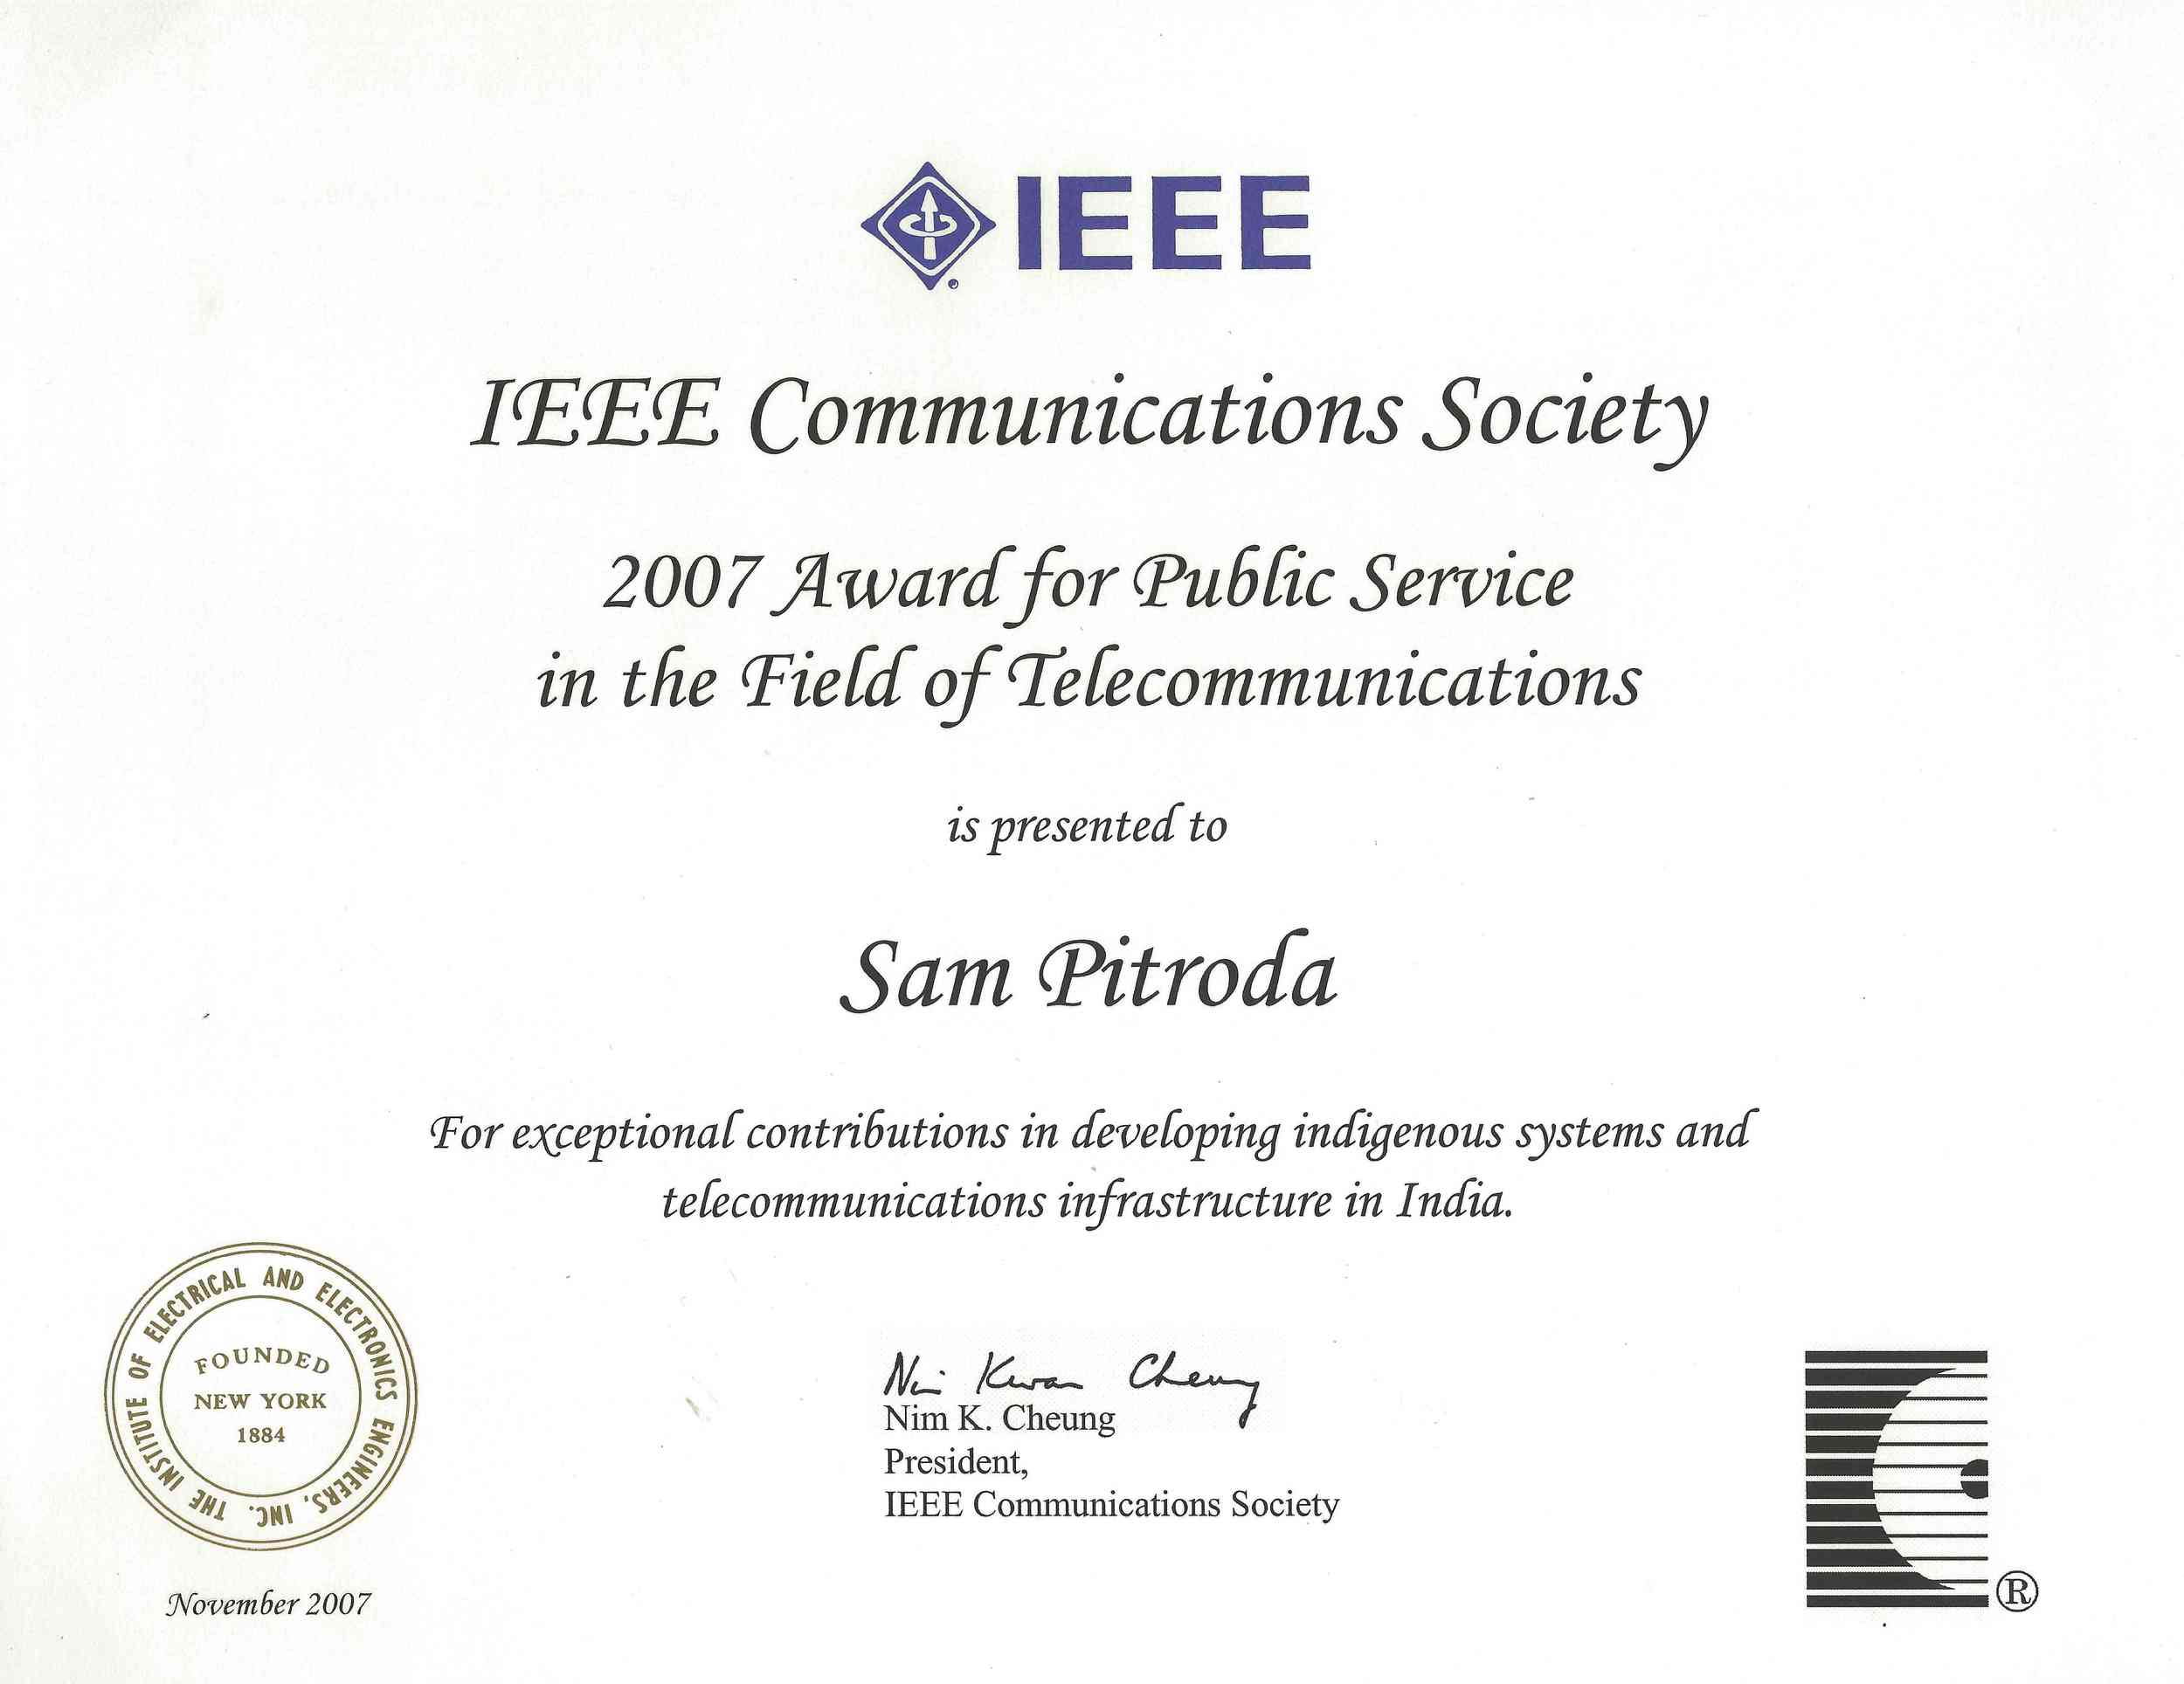 Award for Public Service in the Field of Telecommunications, IEEE Communications Society, 2007